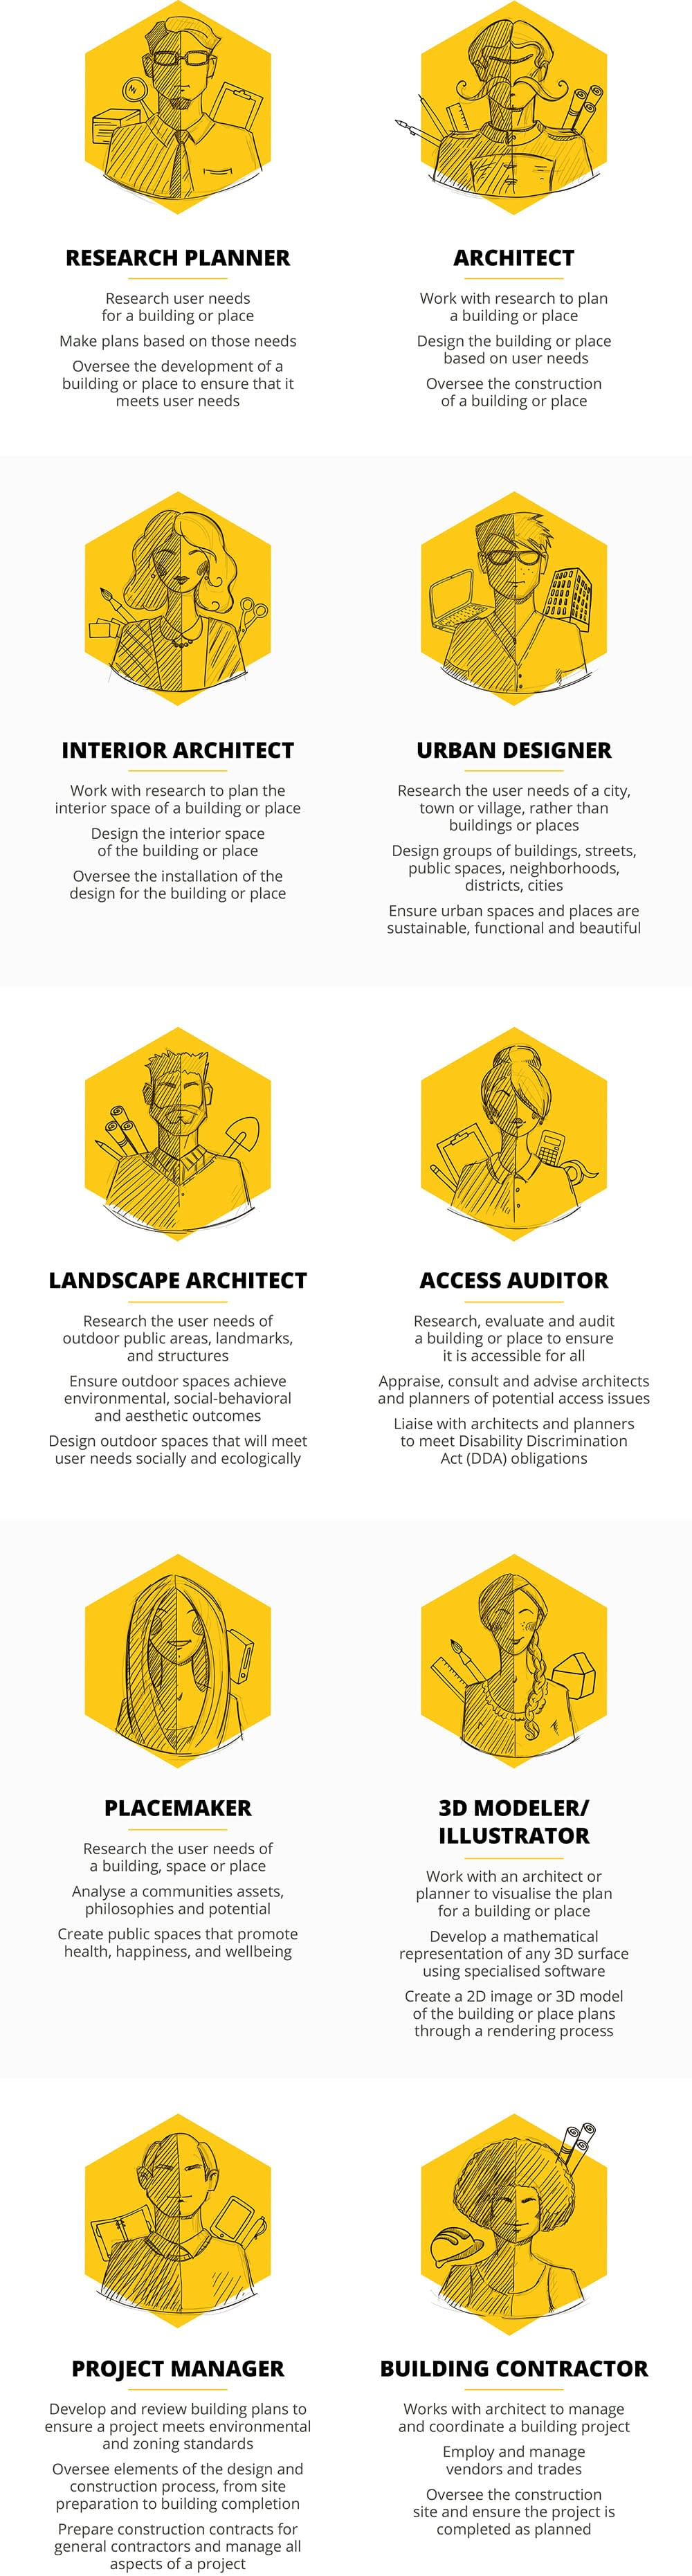 Architectural Architypes